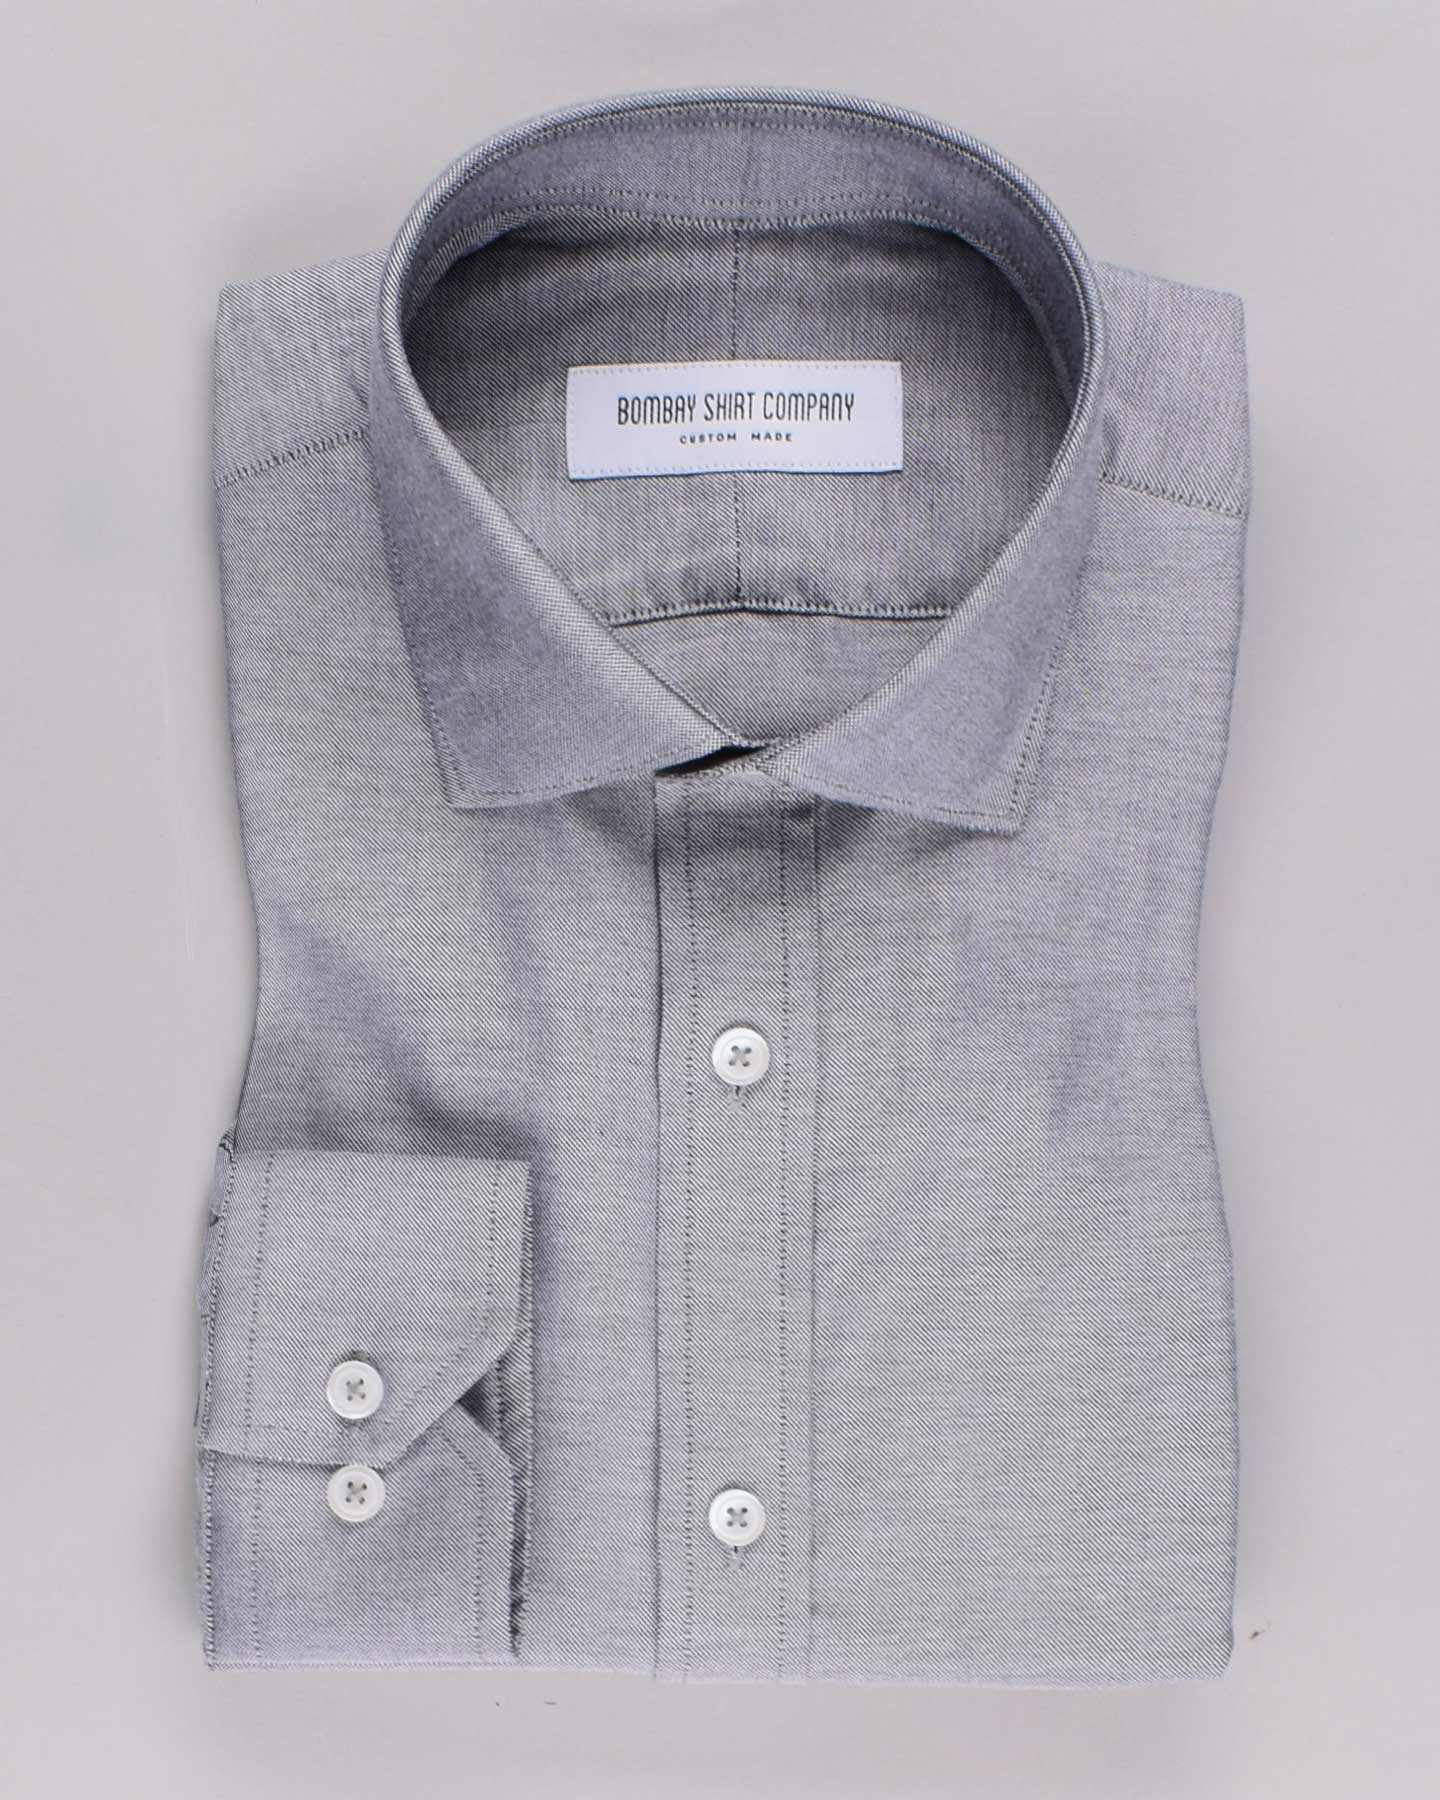 Cloudy Oxford Shirt